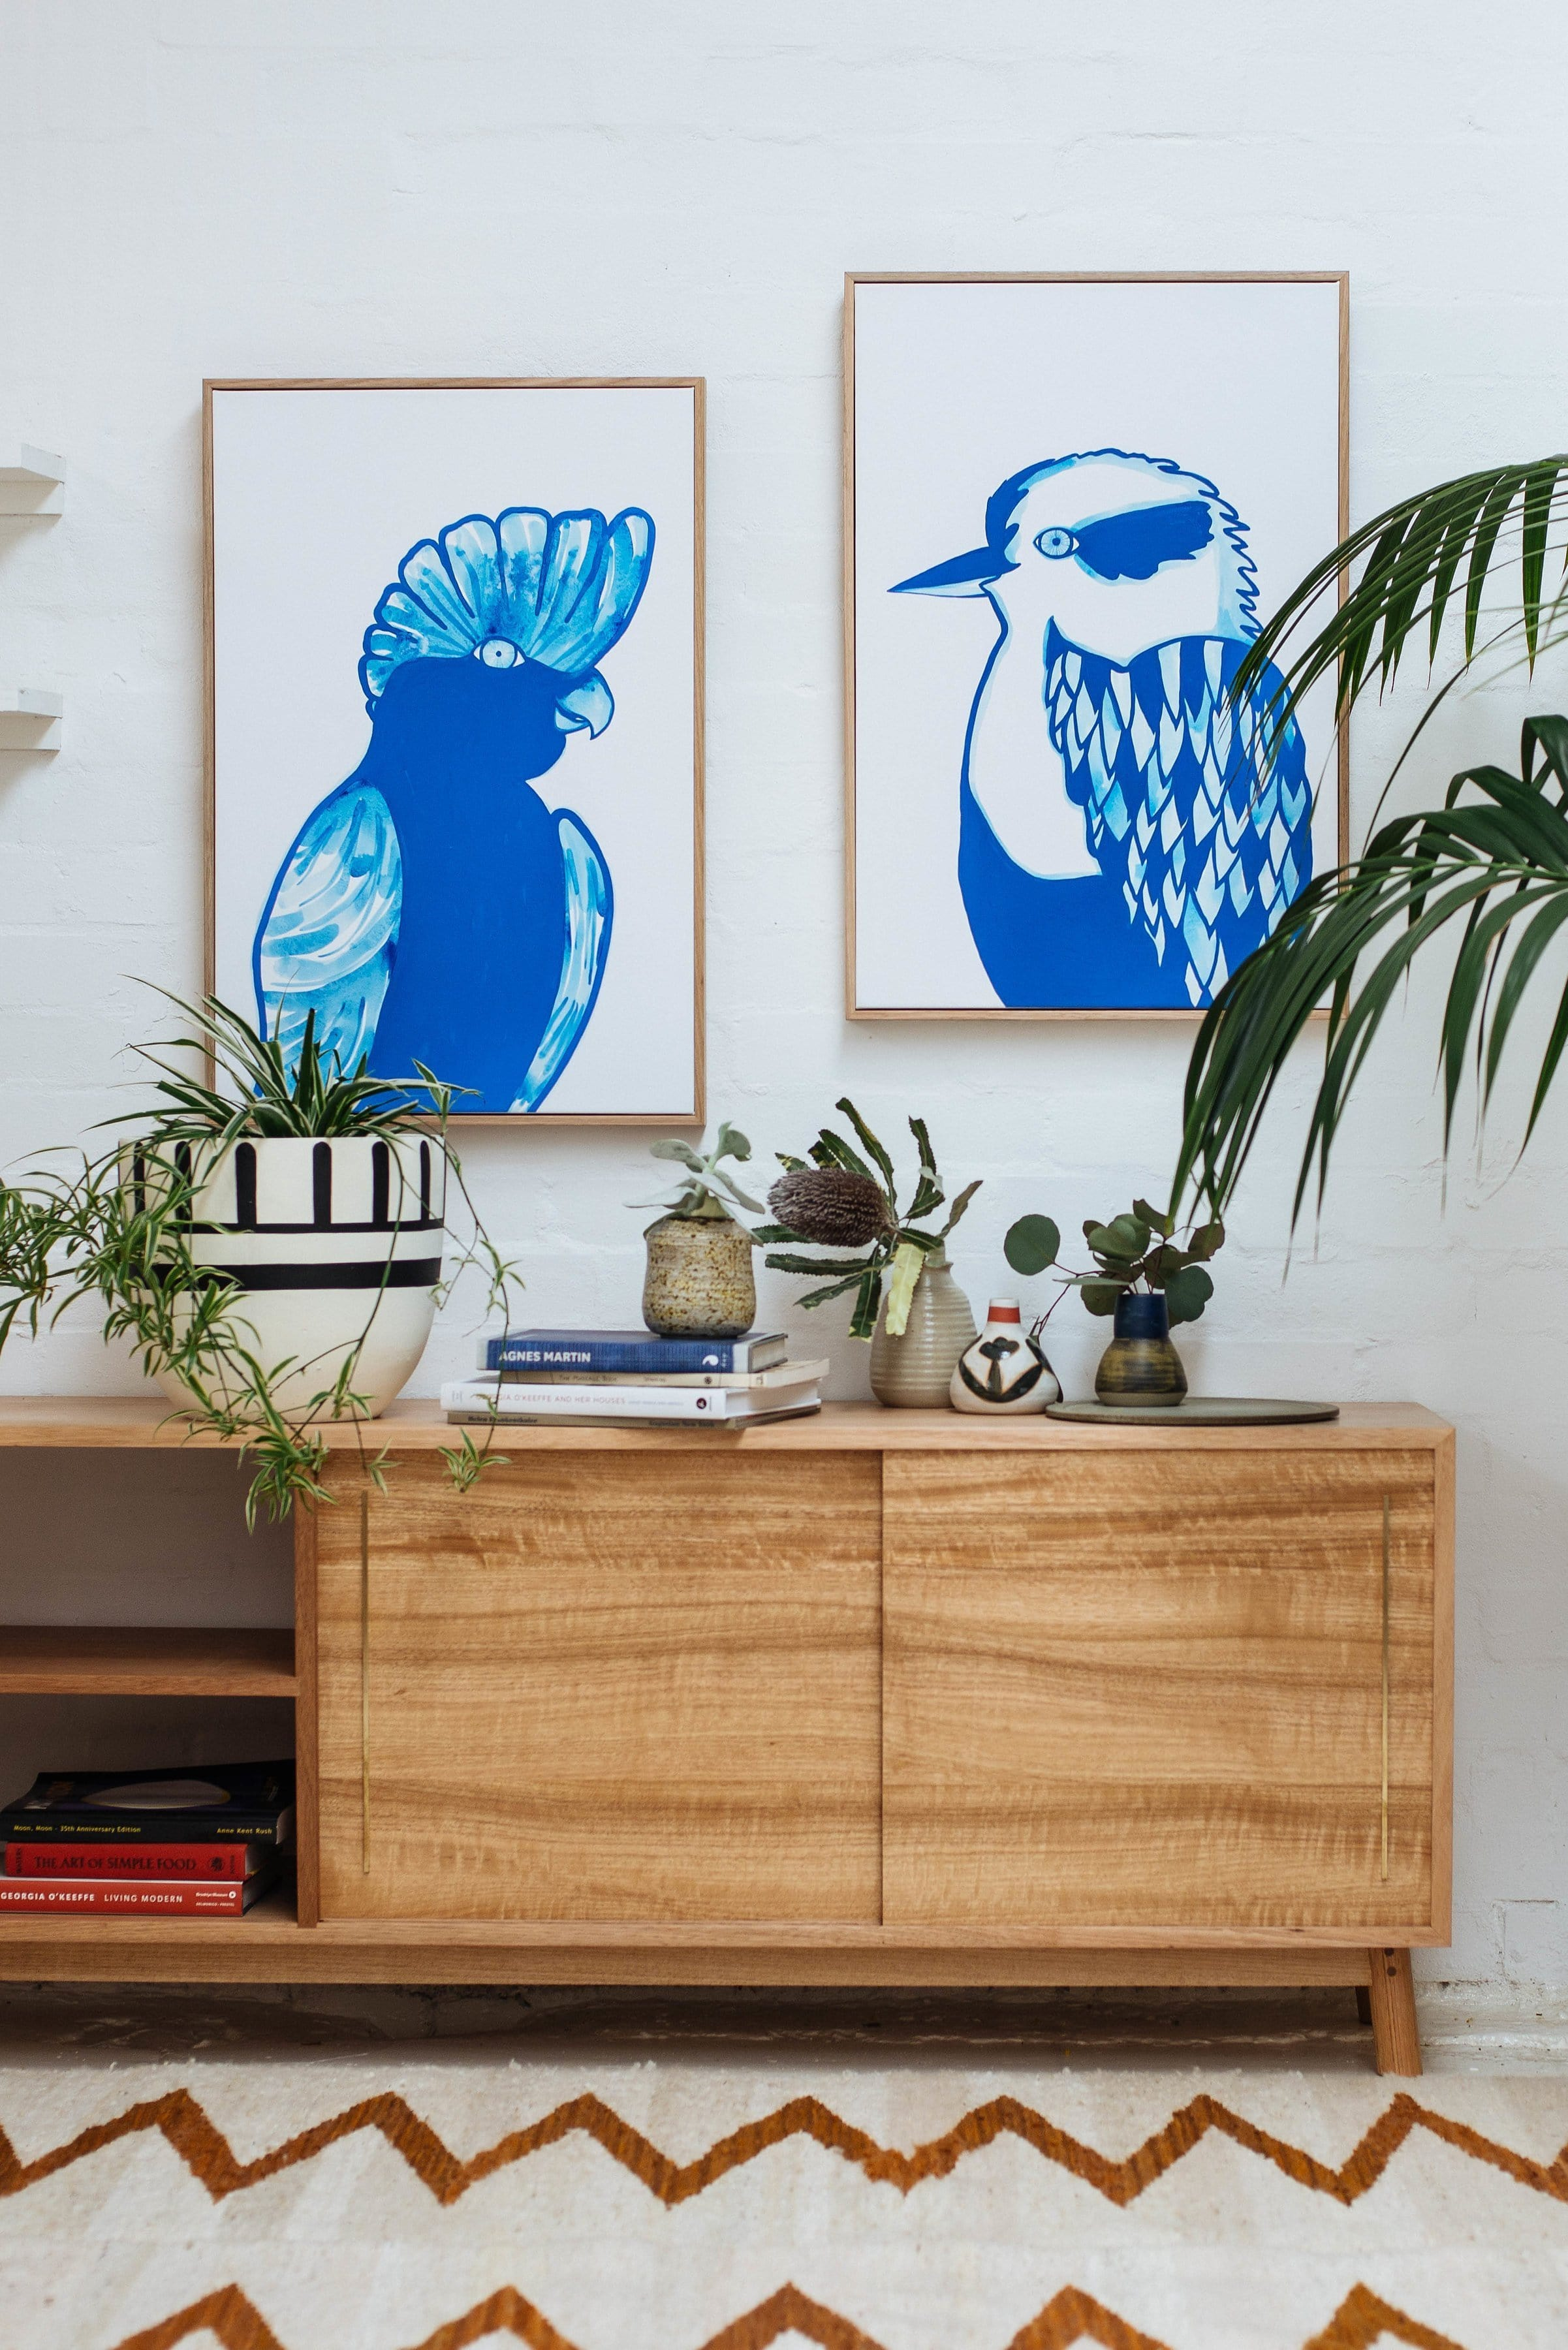 Kookaburra - Print by Madeleine Stamer | Shop Prints | Greenhouse Interiors